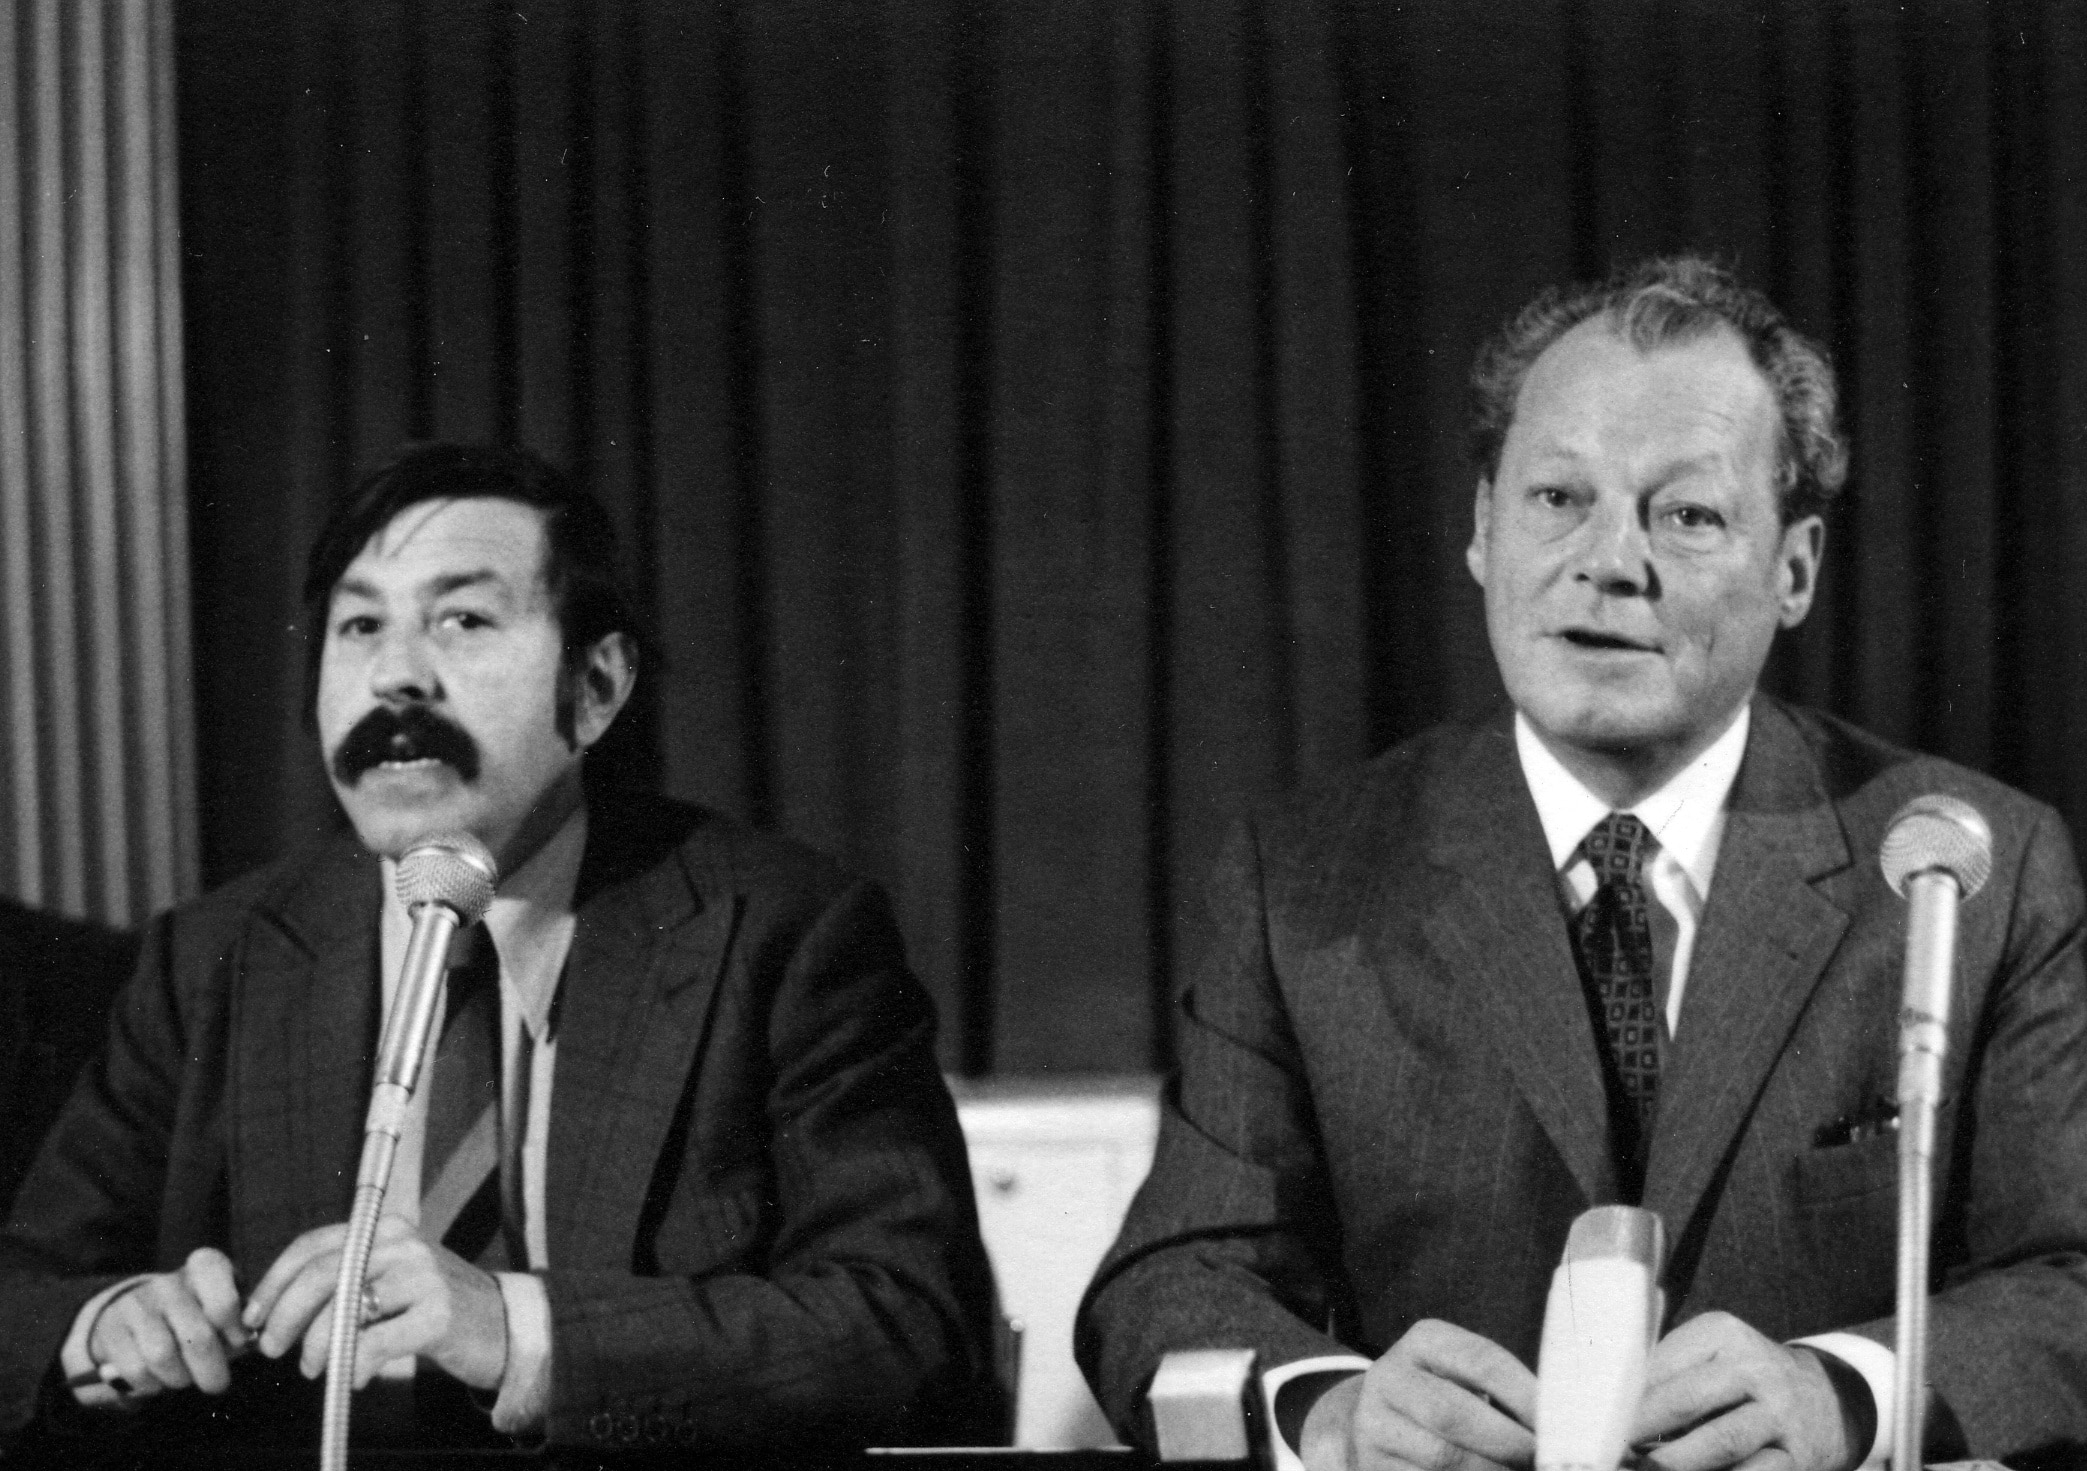 Willy Brandt and Günter Grass, 1972. Photo: Monster4711. (CC0 1.0).